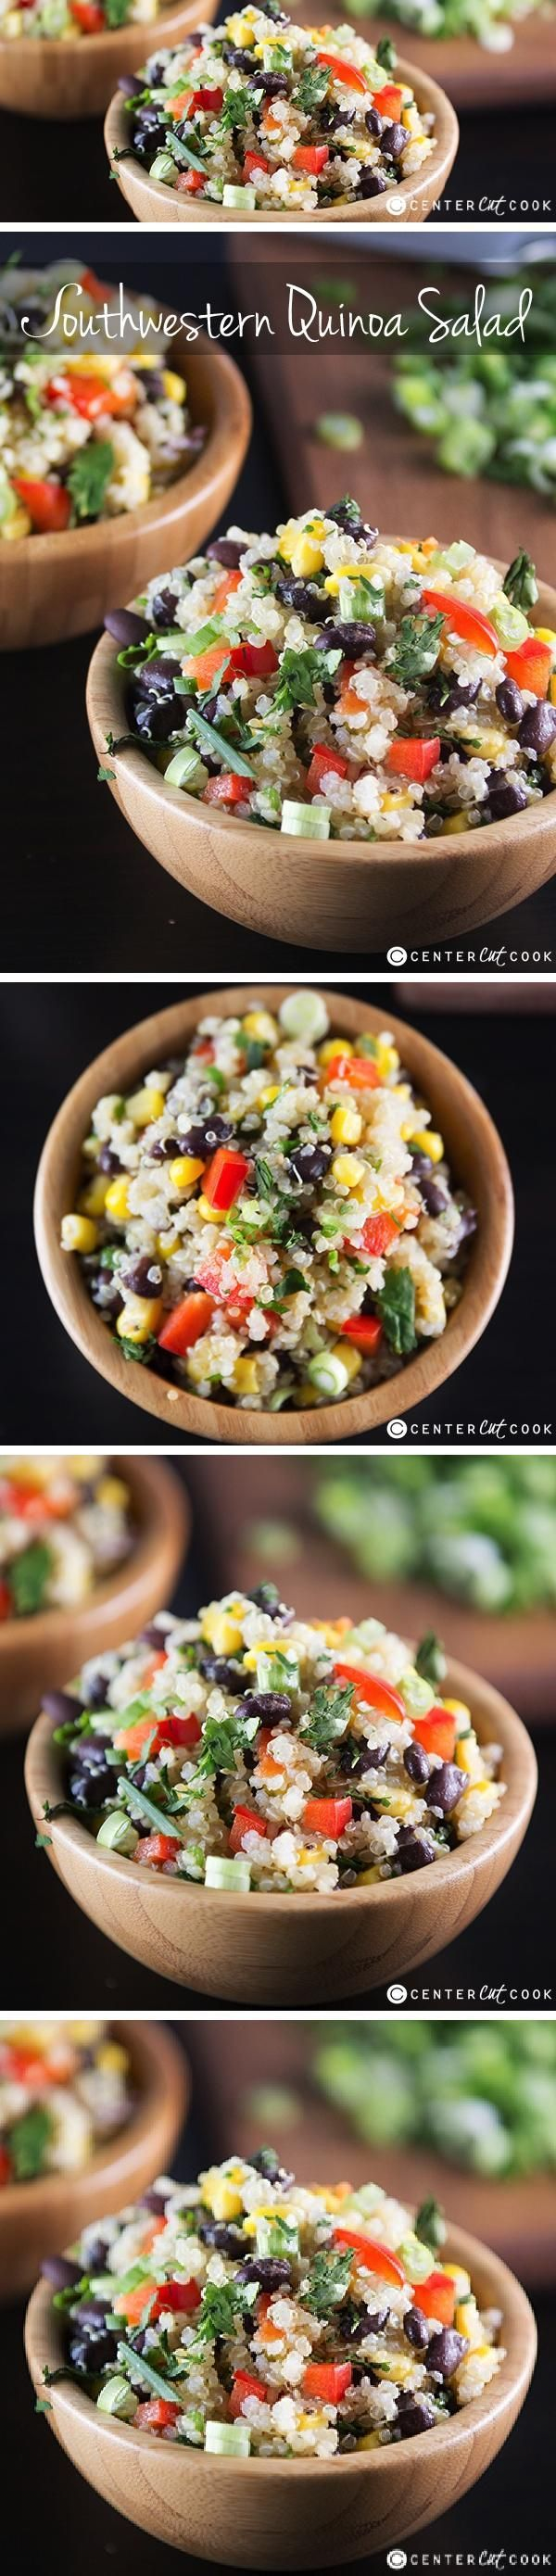 Southwest Quinoa Salad Similar To The Whole Foods Version With A Lime  Dressing! Clean Eating Luckily, This Recipe